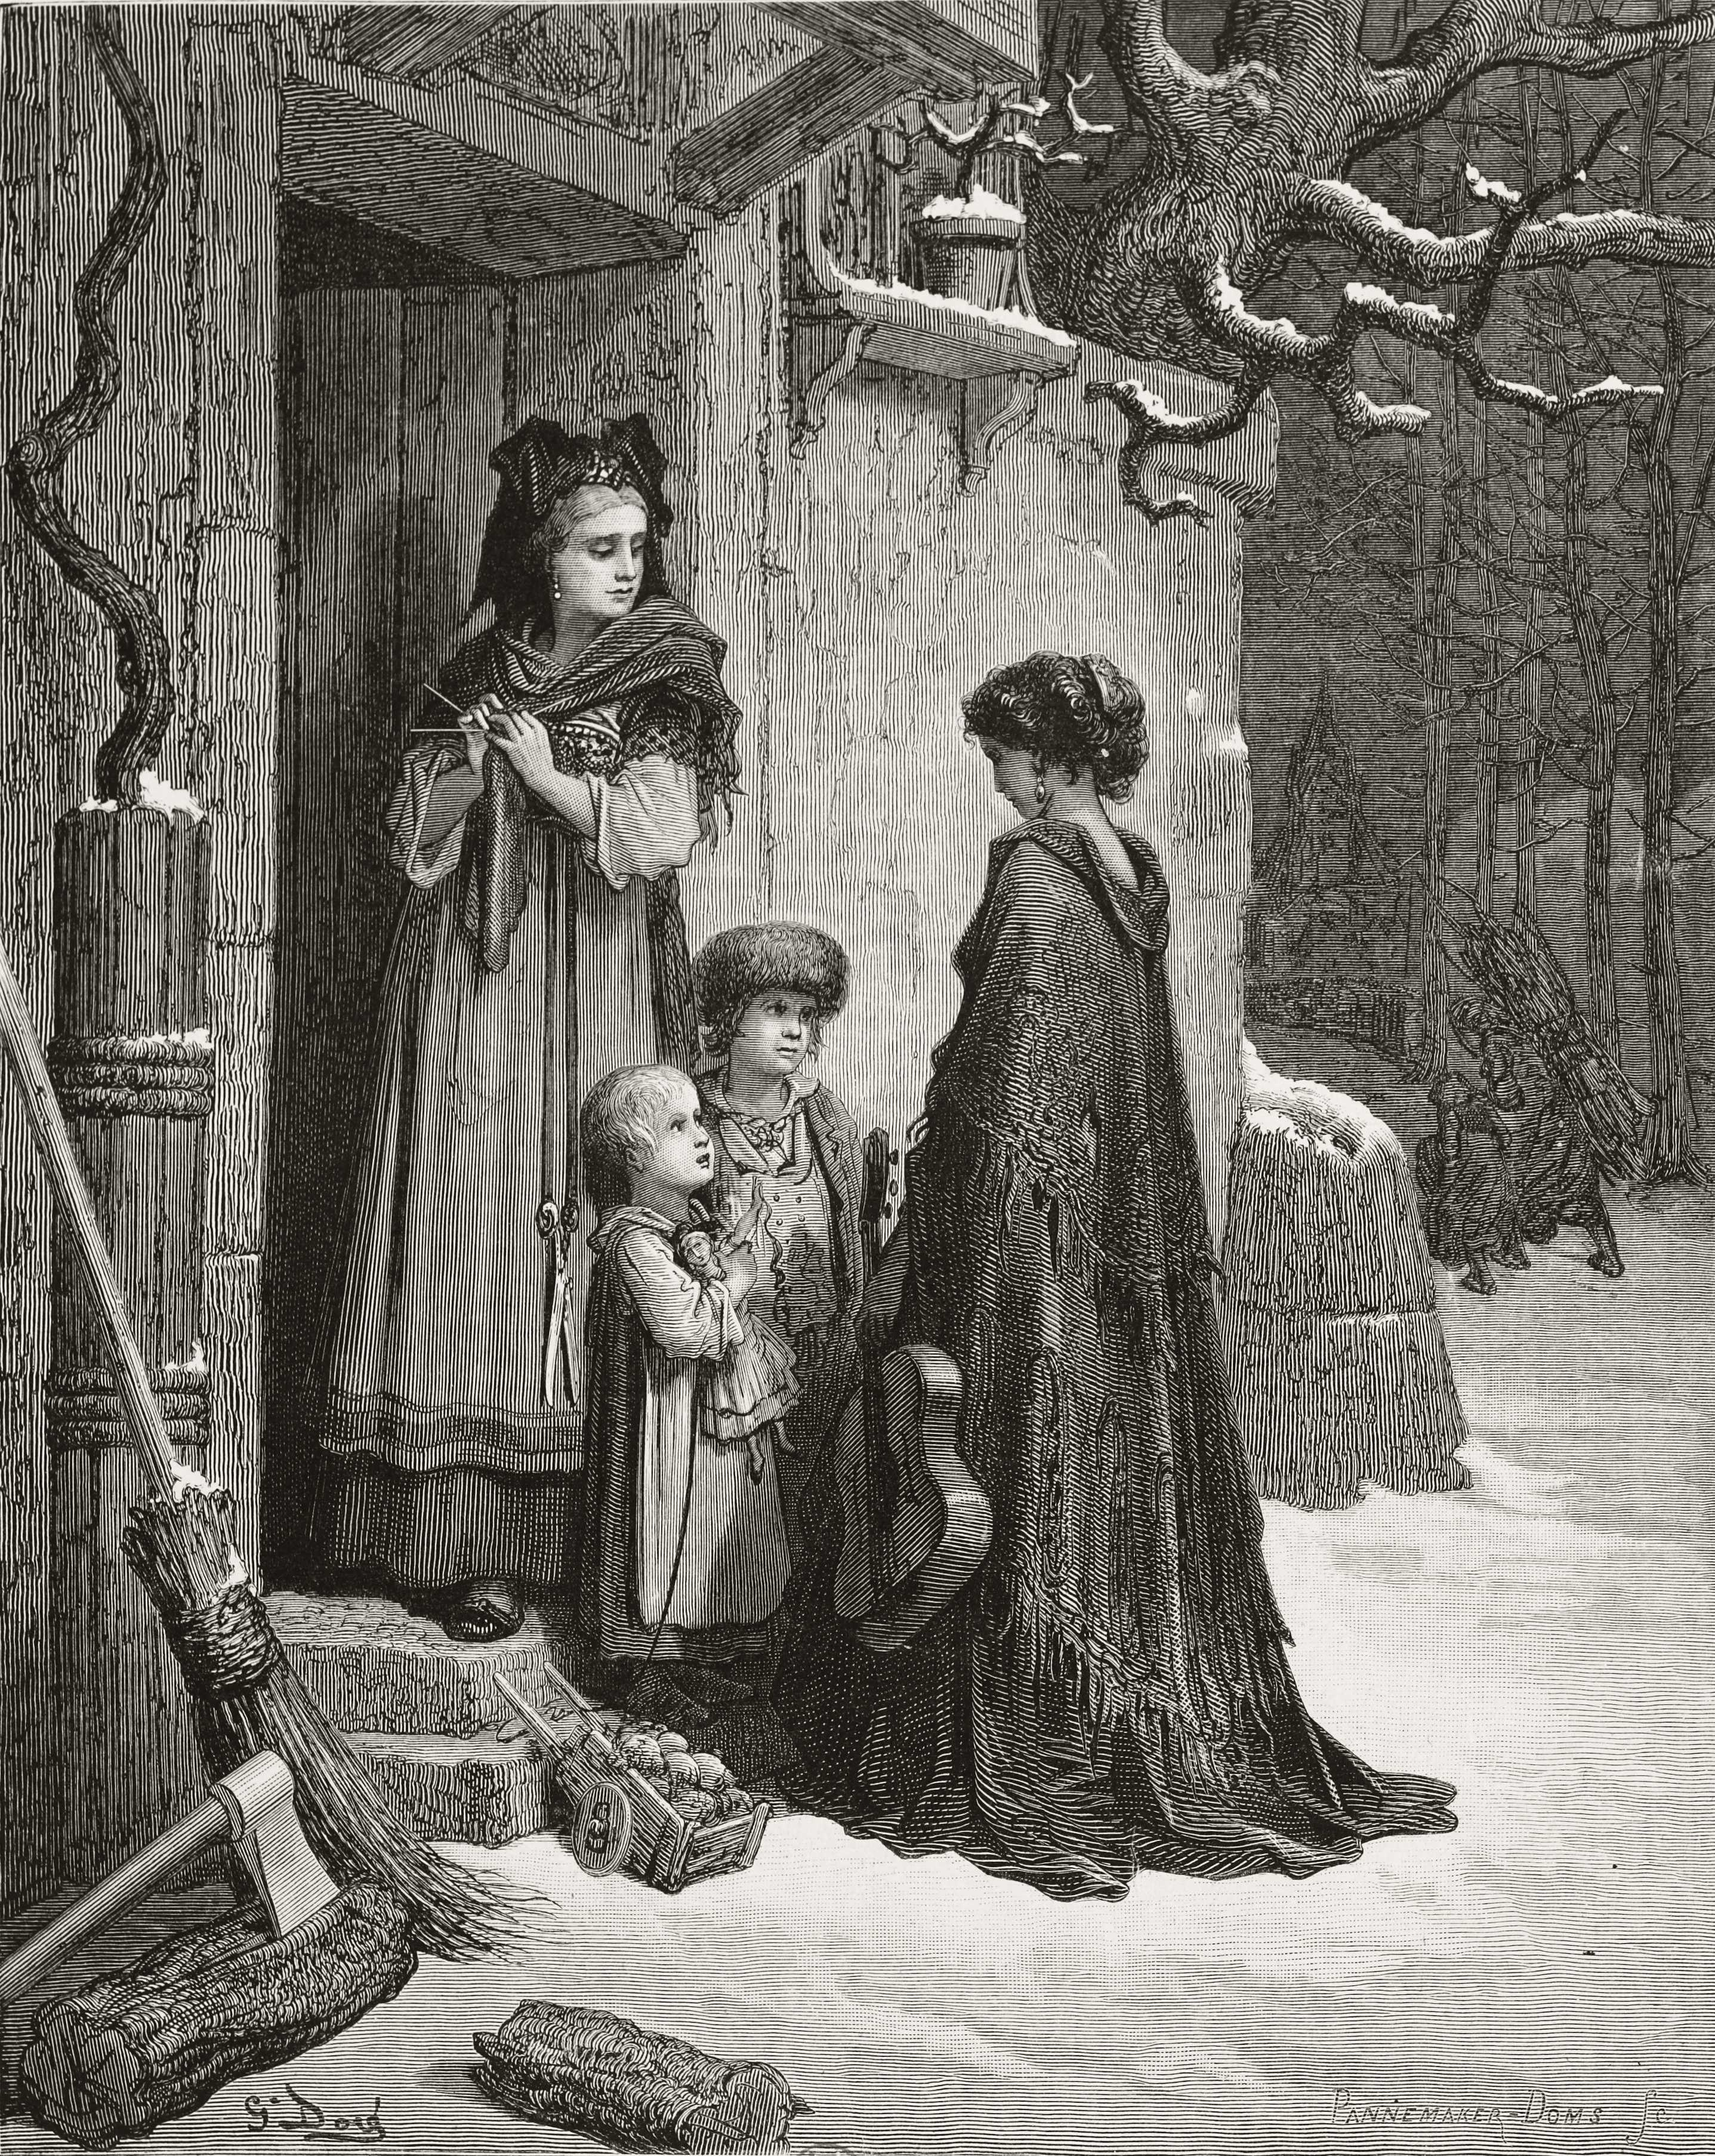 File:La cigale et la fourmi illustration dore.jpg